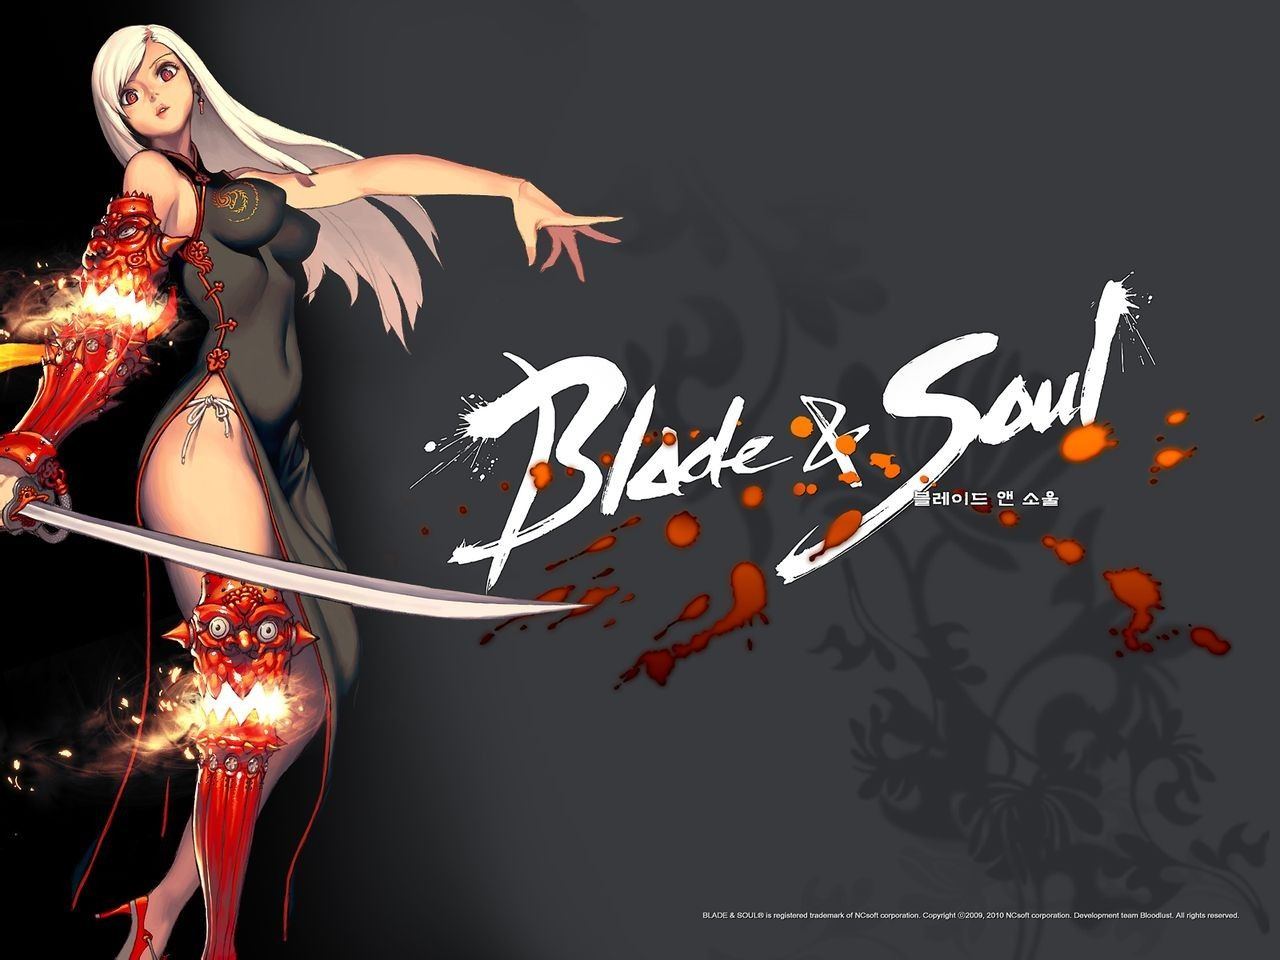 Blade and soul blade master pvp - e0ad